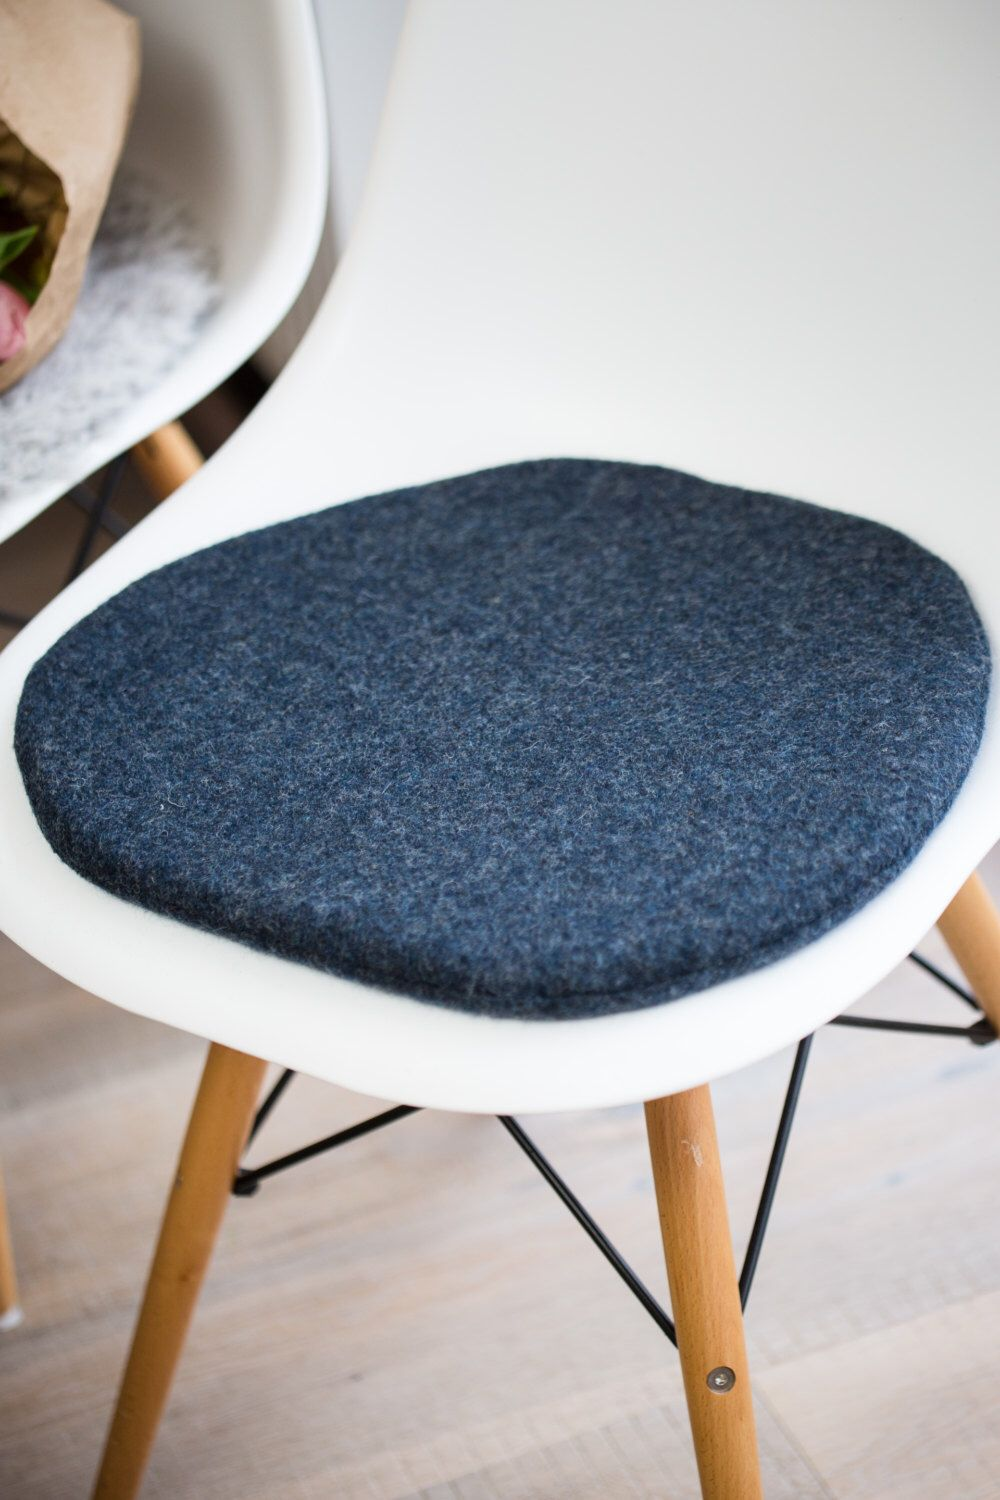 Chair Cushion Suitable For Eames Chair In Pigeon Blue